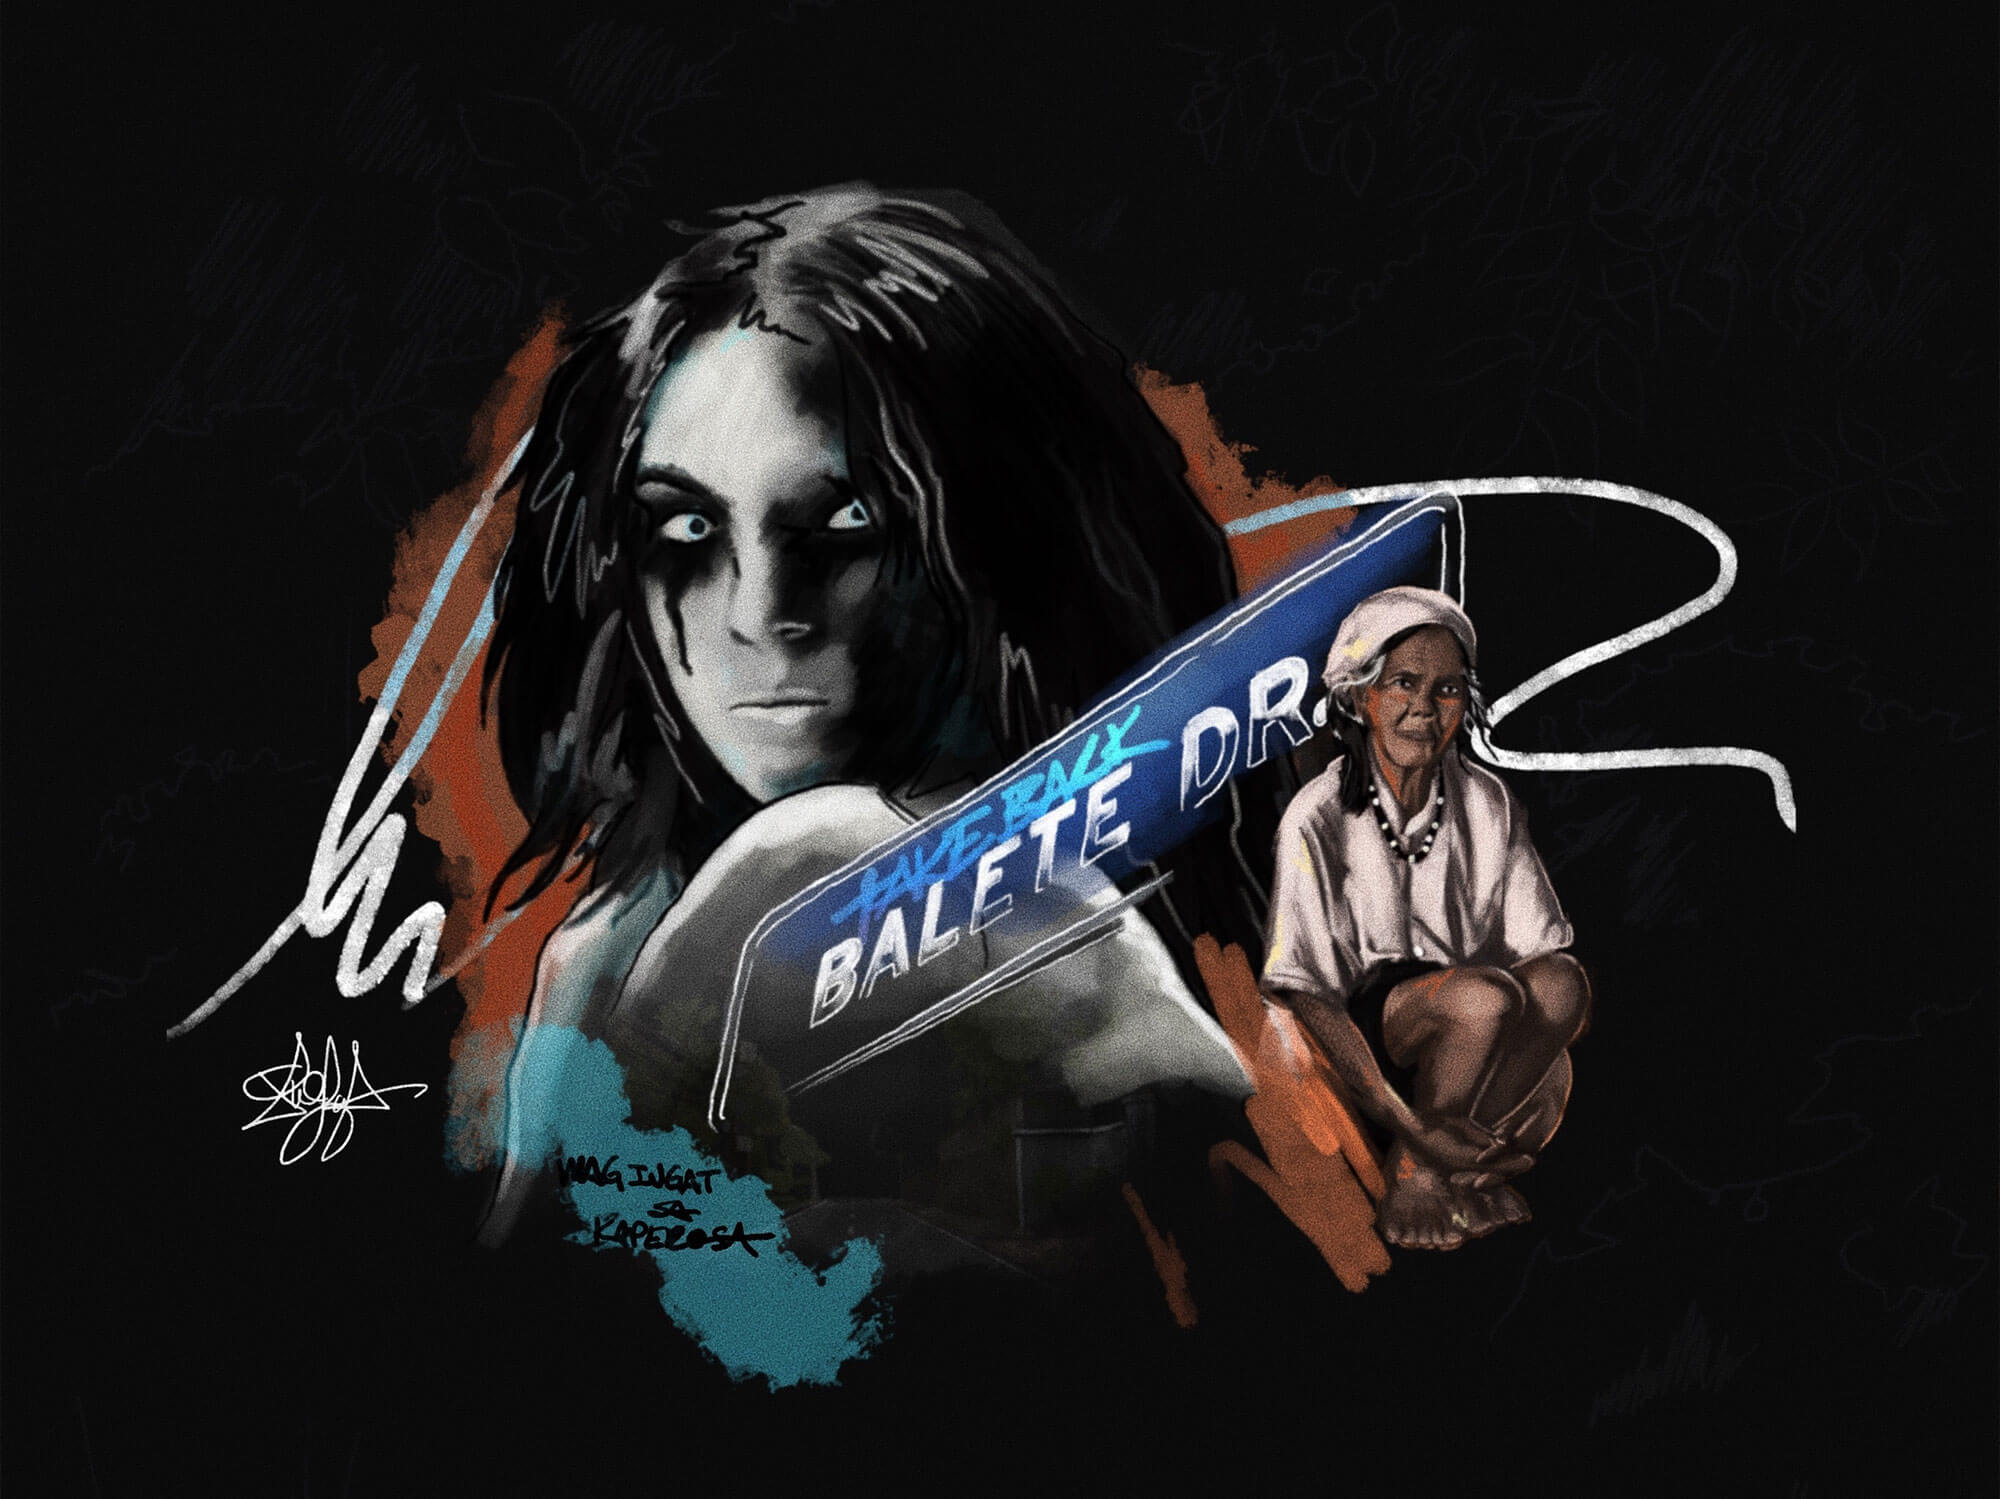 """An illustration featuring a white woman's ghost, a brown-skinned woman with white hair, and the text """"Take Back Balete Drive"""""""